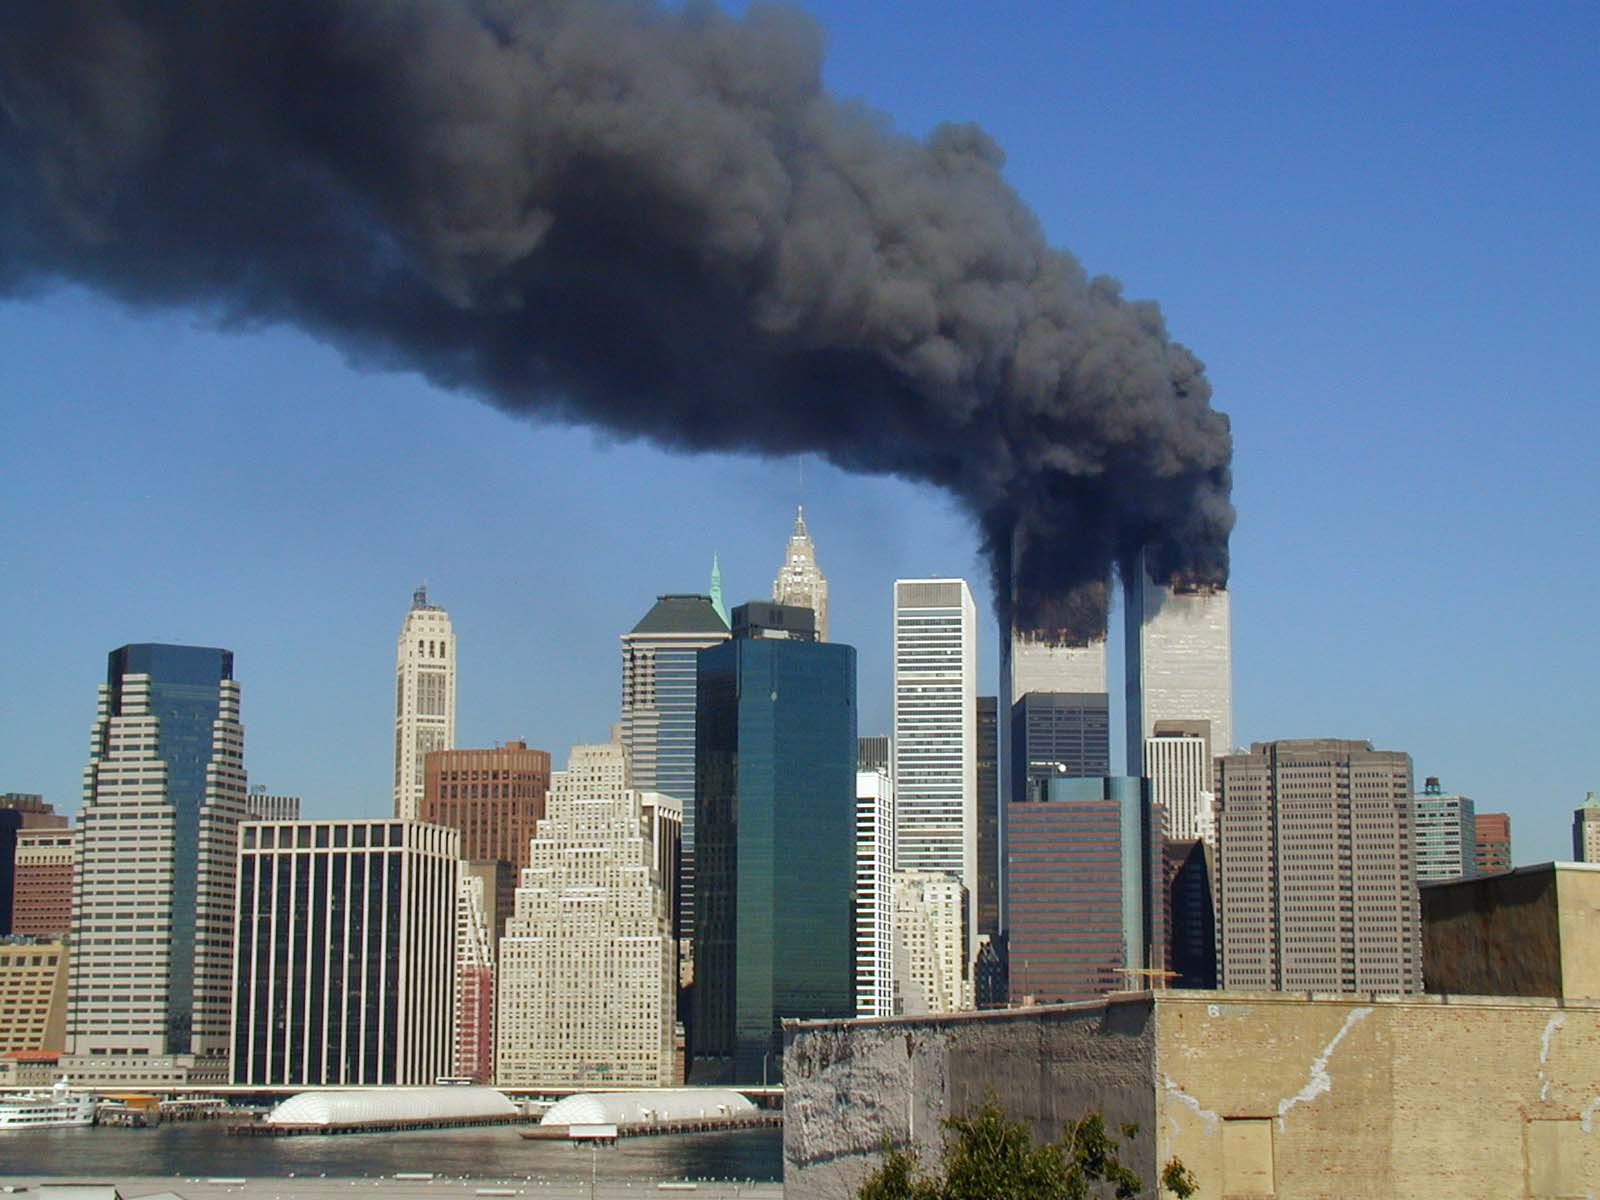 Smoke pours from the World Trade Center towers in New York City following the terrorist attacks on Sept. 11, 2001. (Source: Wikimedia Commons)